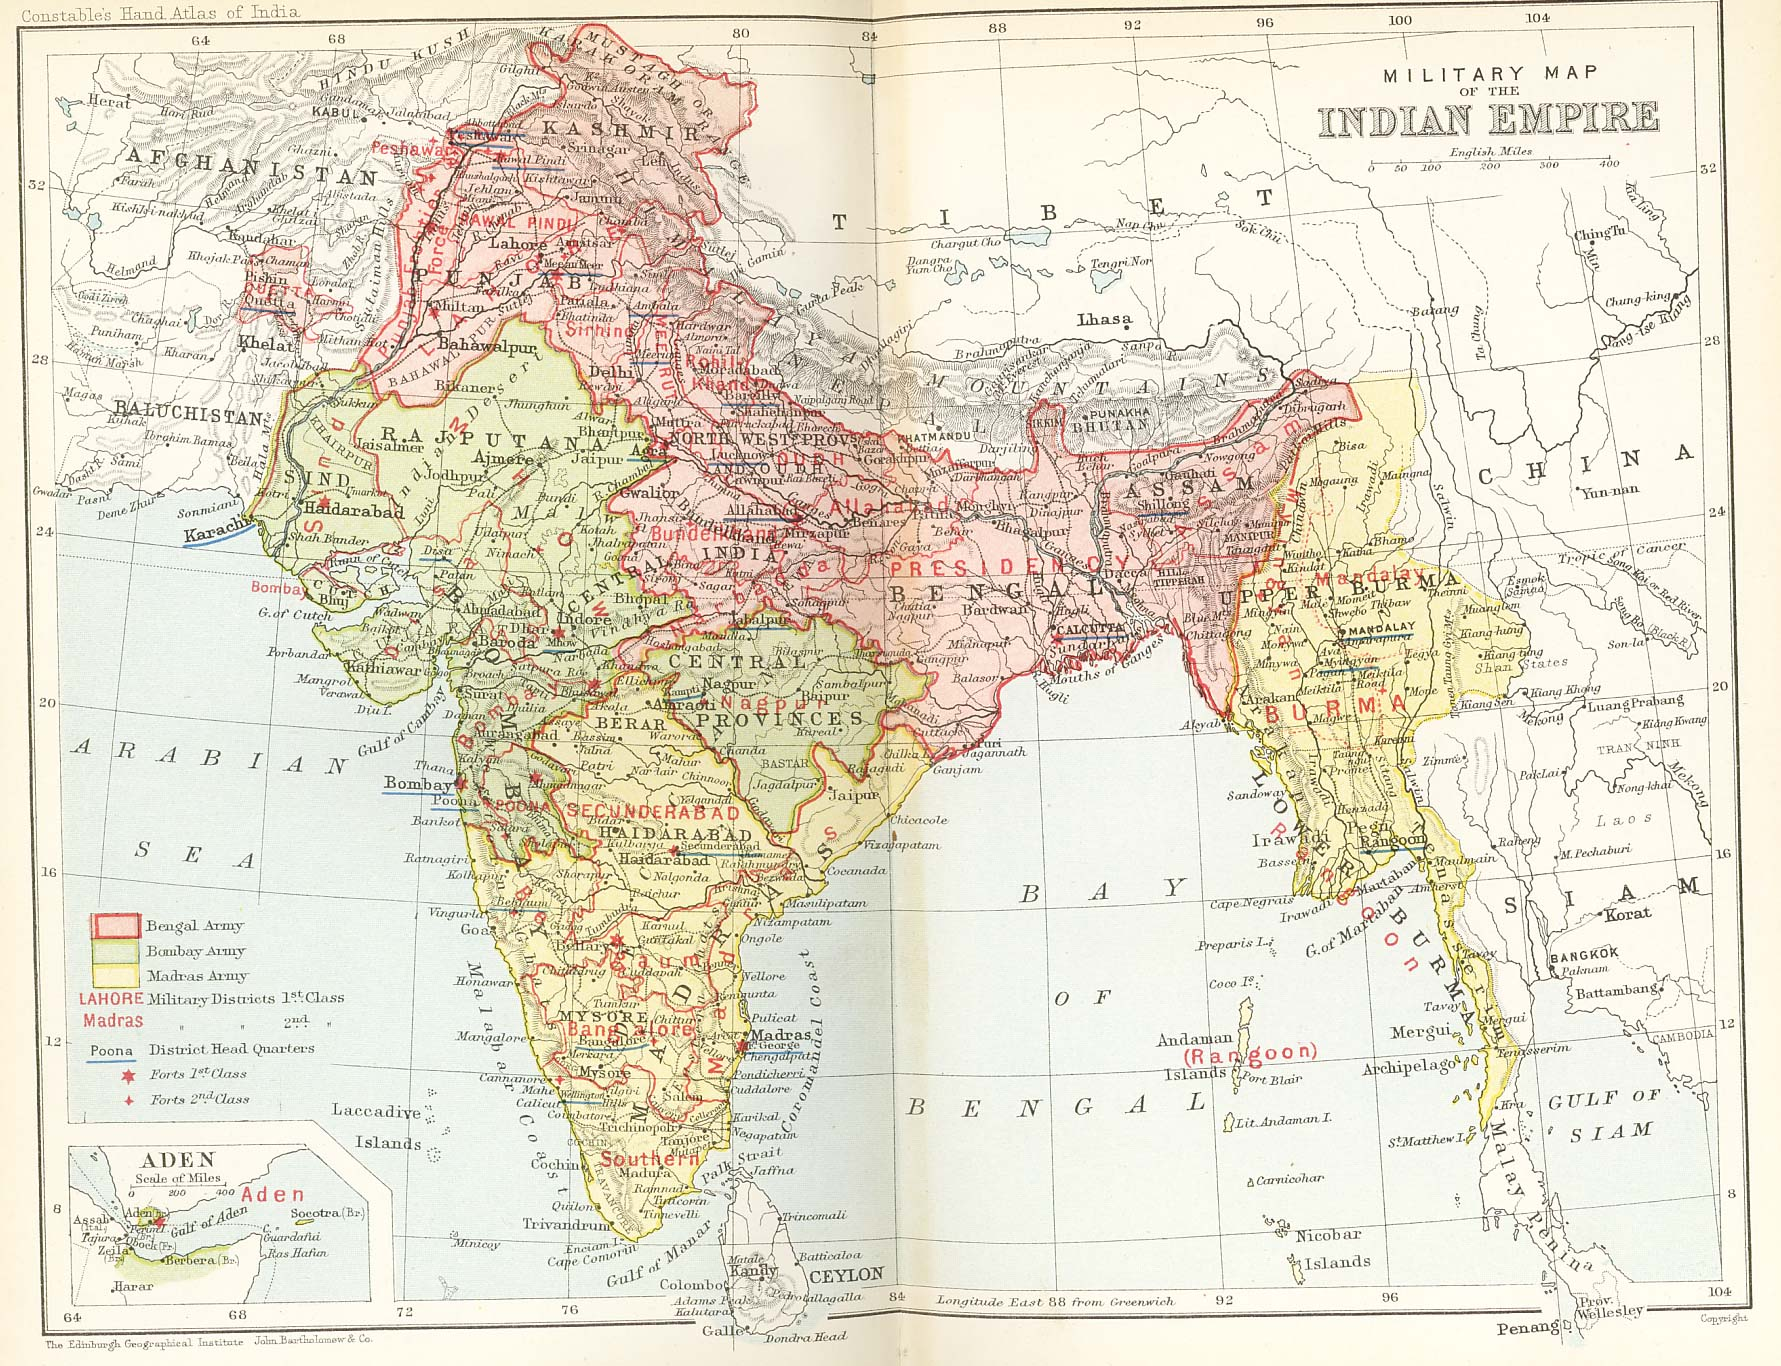 Historical Maps of India on highway state map, punjab state map, london state map, singapore state map, washington state map, bengal state map, rome state map, dallas state map, salem state map, uttar pradesh state map, jaipur state map, assam state map, gujarat state map, burma state map, delhi state map, ontario state map, goa state map,